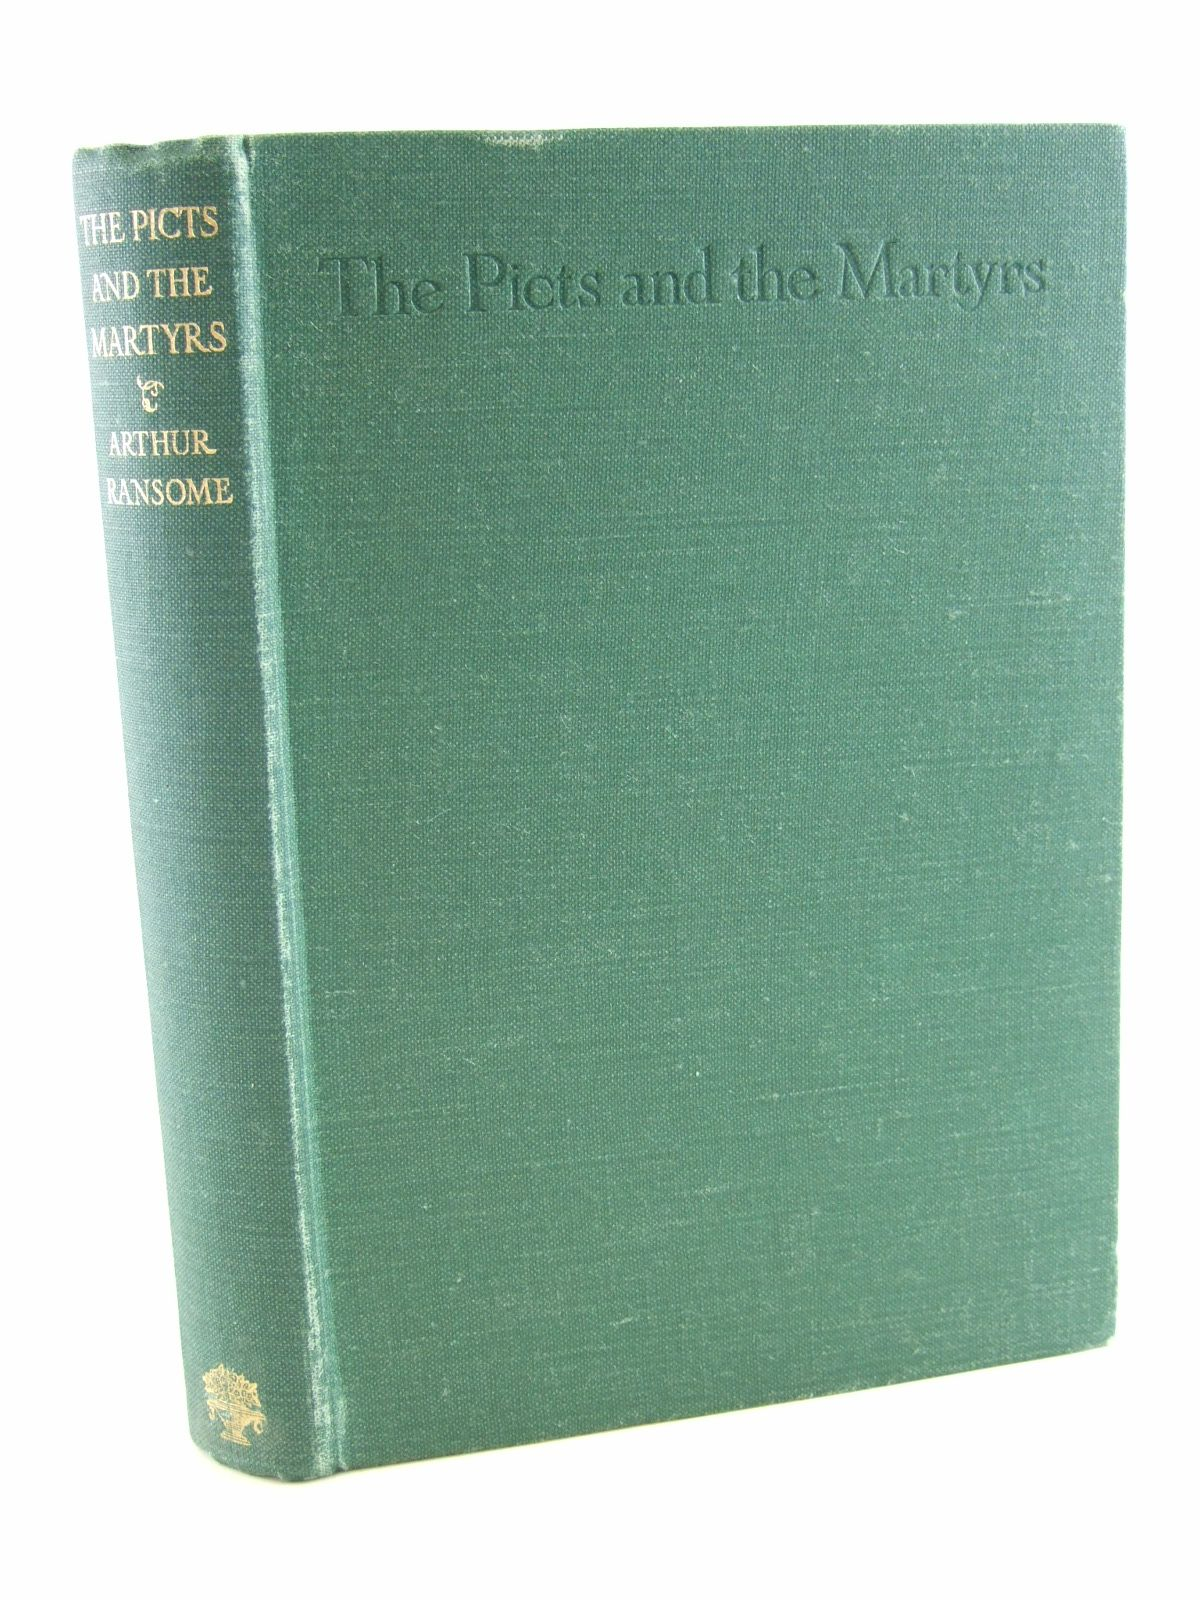 Photo of THE PICTS AND THE MARTYRS written by Ransome, Arthur illustrated by Ransome, Arthur published by Jonathan Cape (STOCK CODE: 2107994)  for sale by Stella & Rose's Books